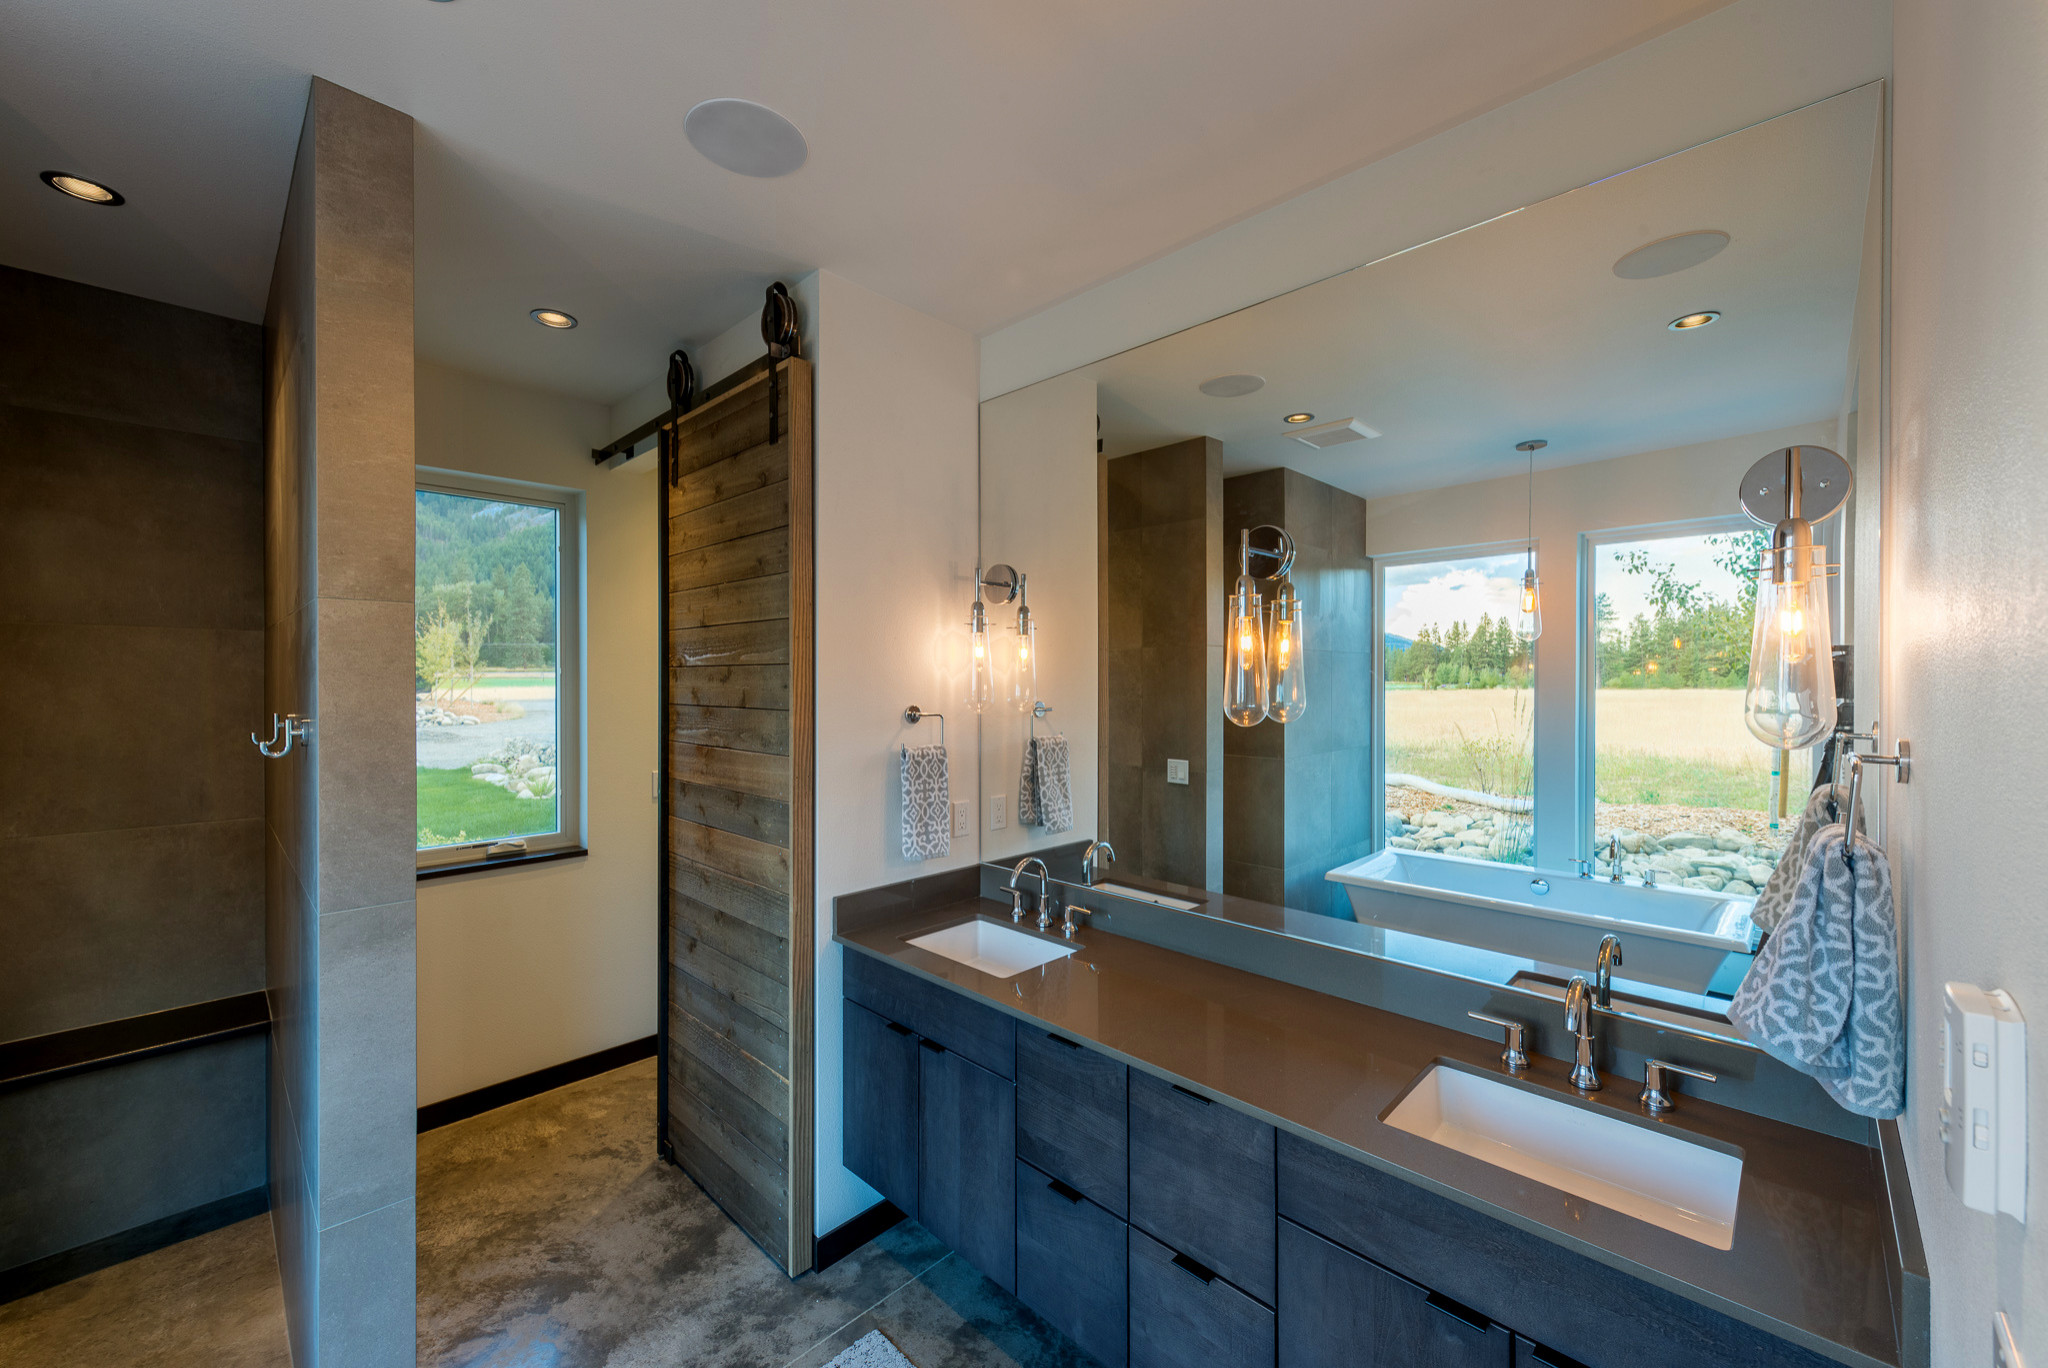 75 Beautiful Bathroom With Flat Panel Cabinets And Recycled Glass Countertops Pictures Ideas November 2020 Houzz